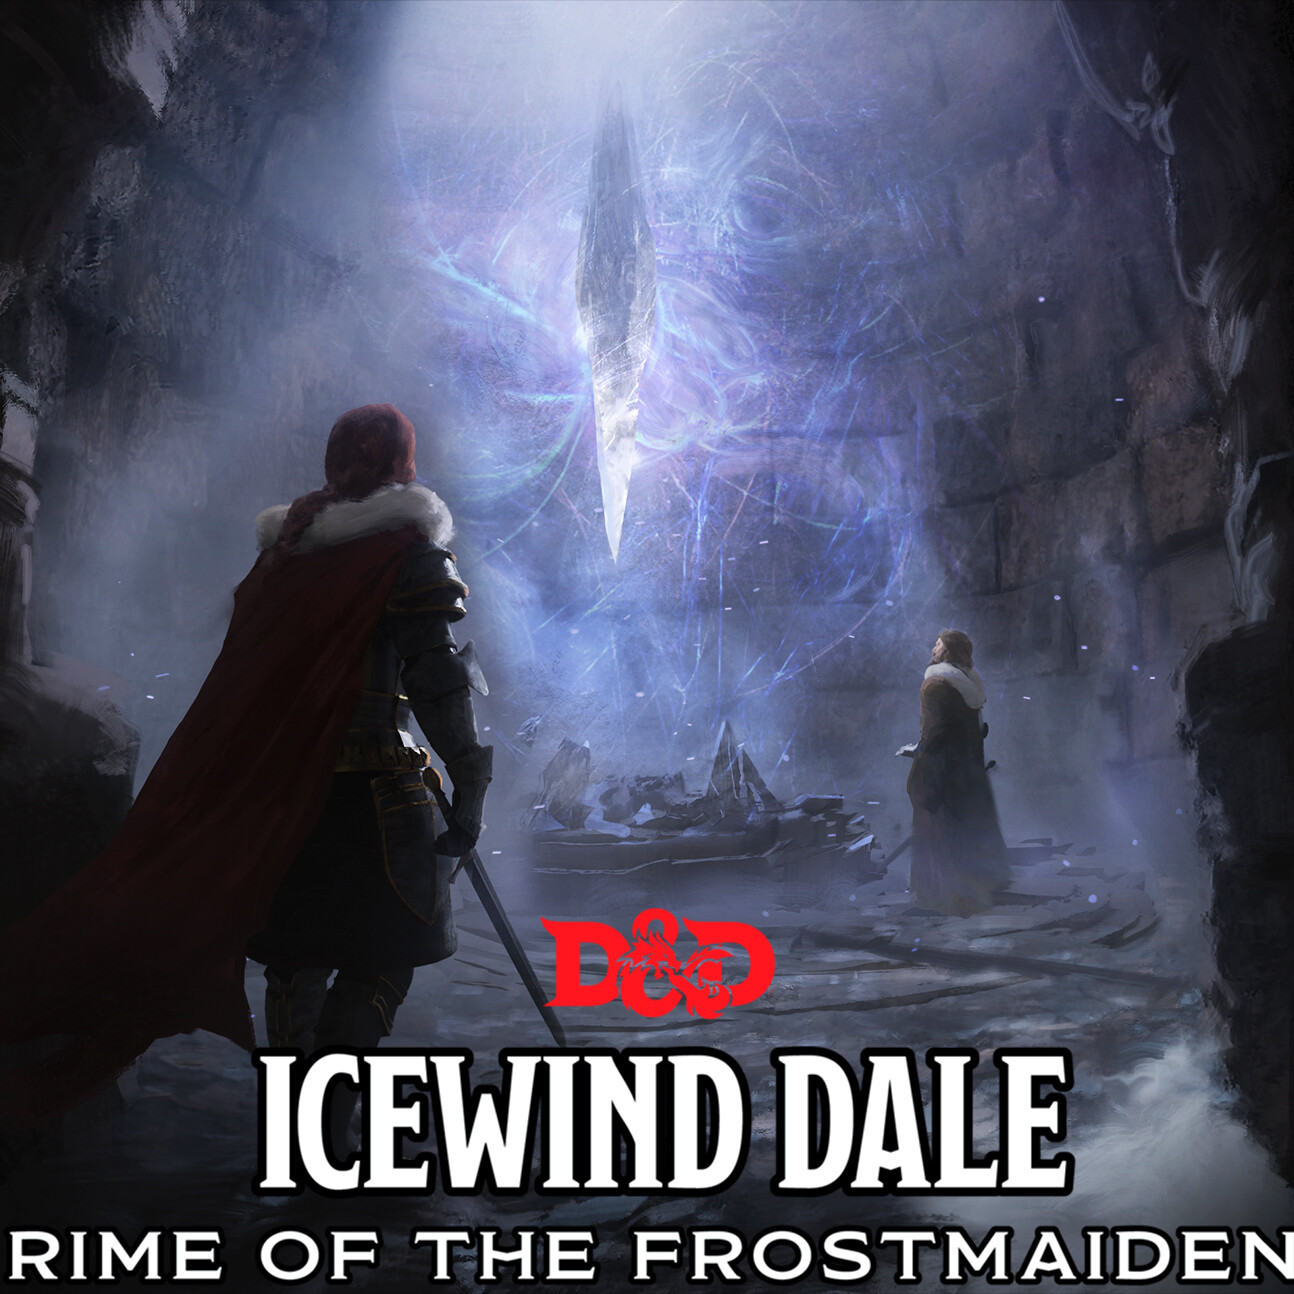 D&D Rime of the Frostmaiden - Ostorian Spindle